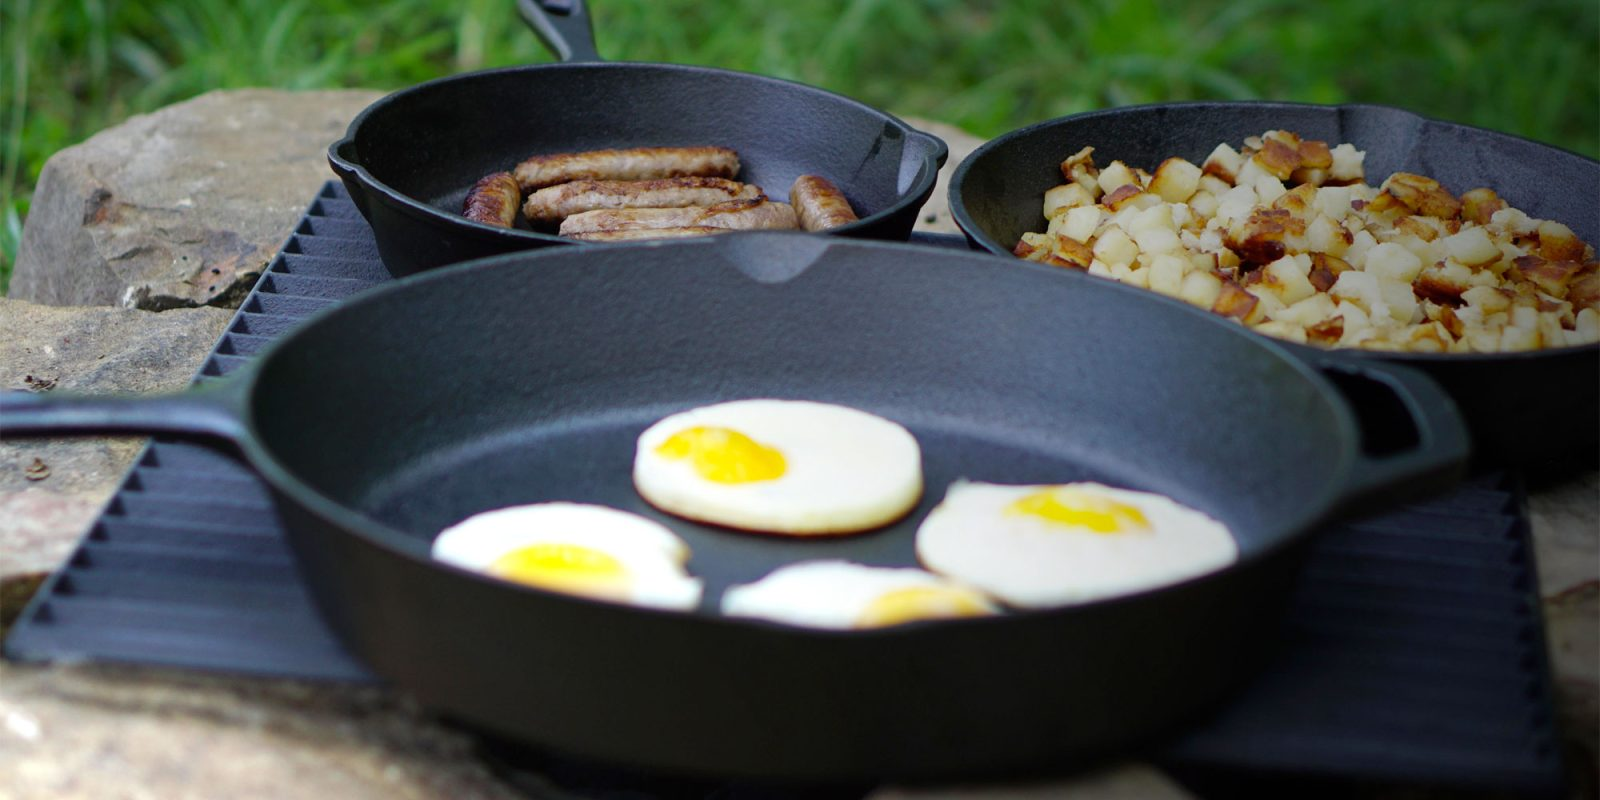 Ozark Trail's three-piece cast iron set gives you skillets for around $6 each